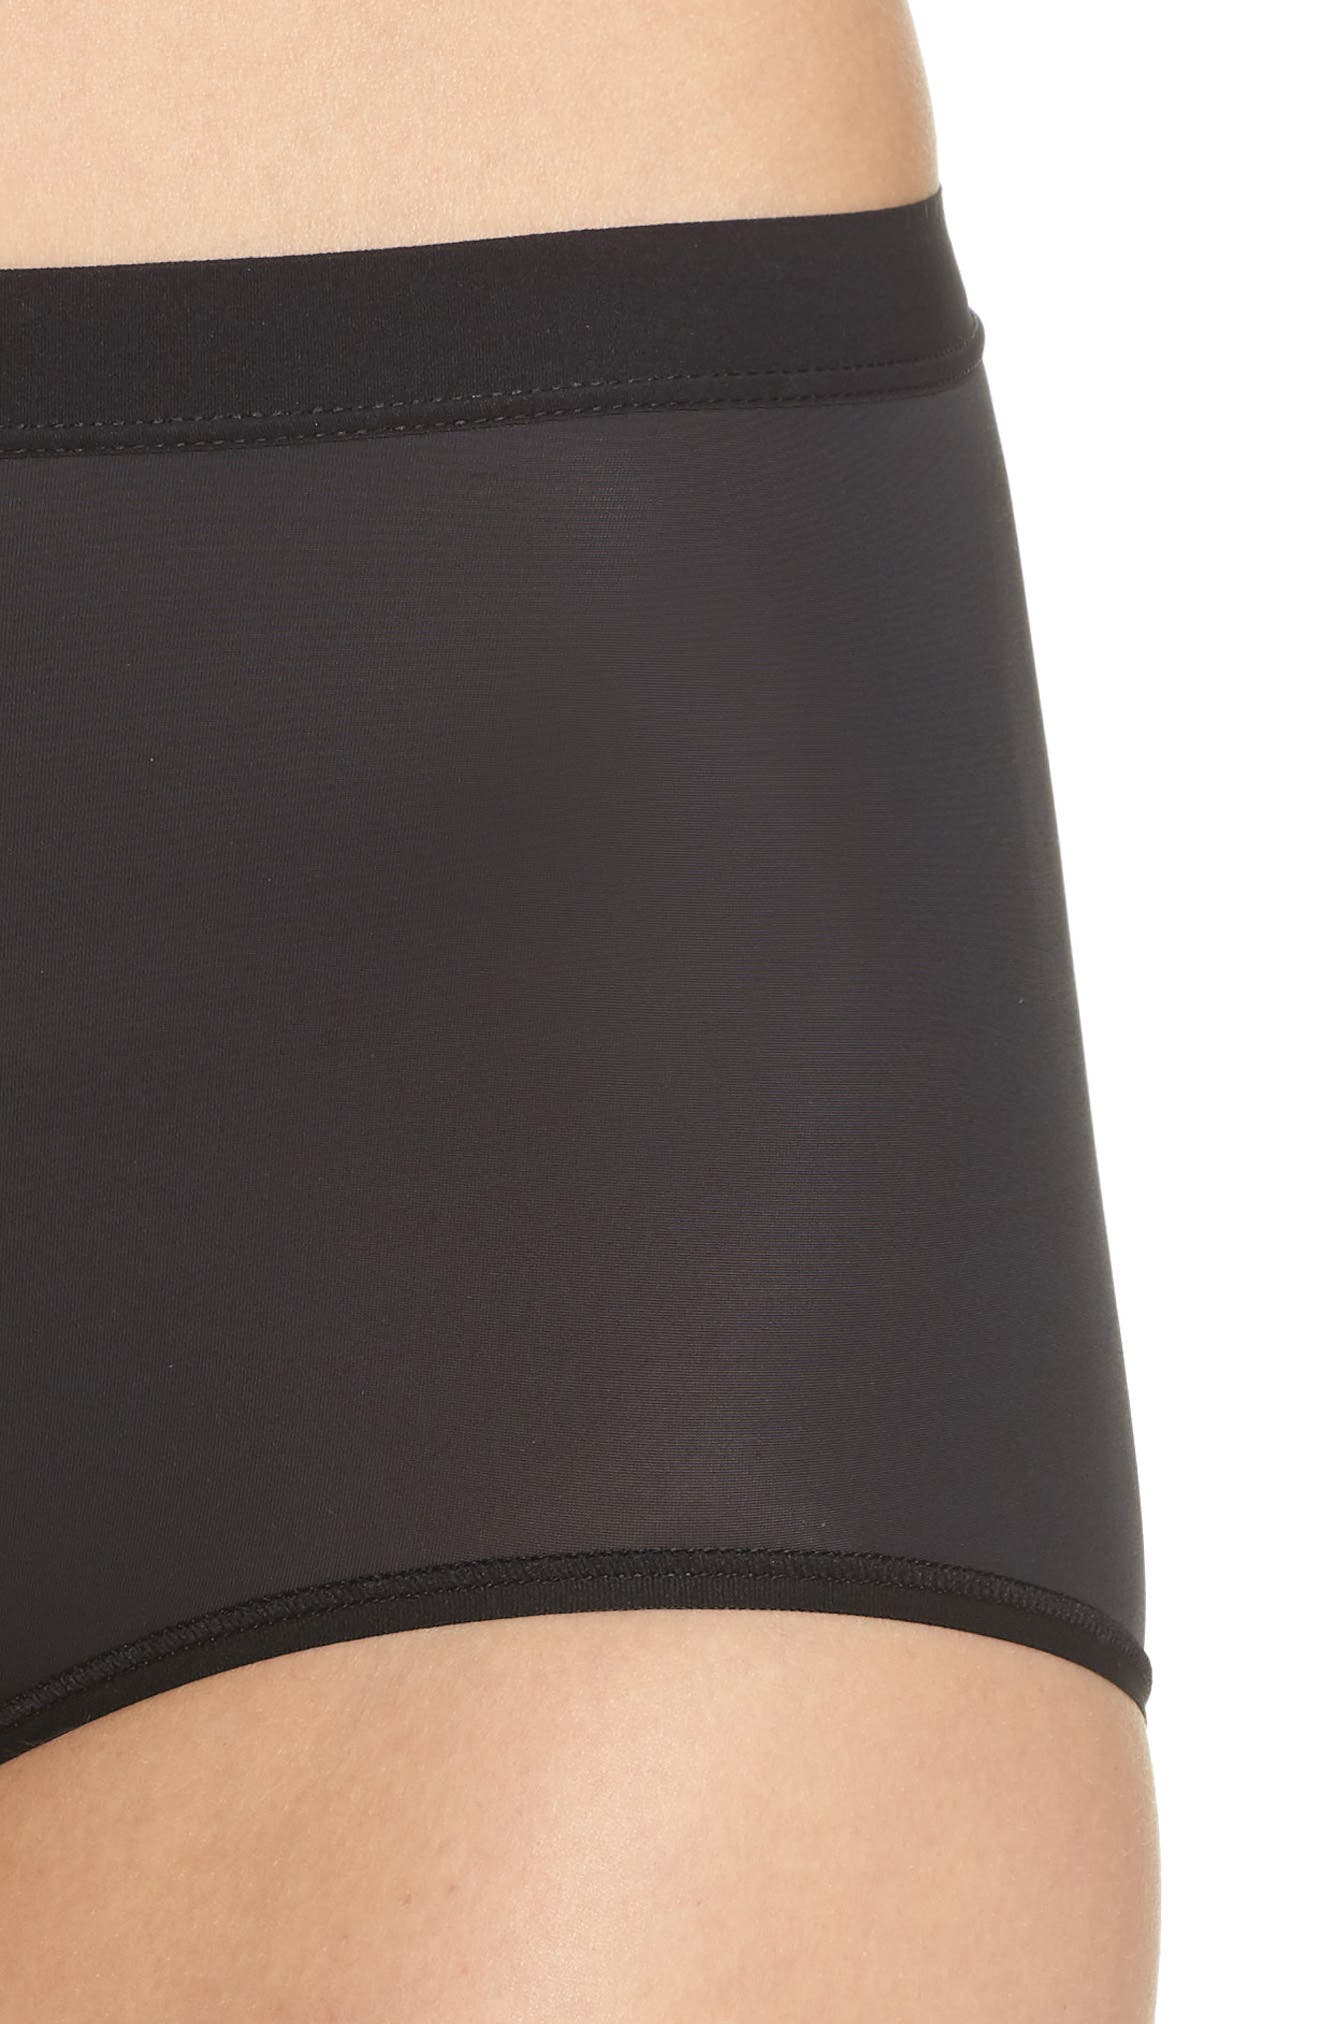 Flawless Comfort Briefs,                             Alternate thumbnail 4, color,                             BLACK